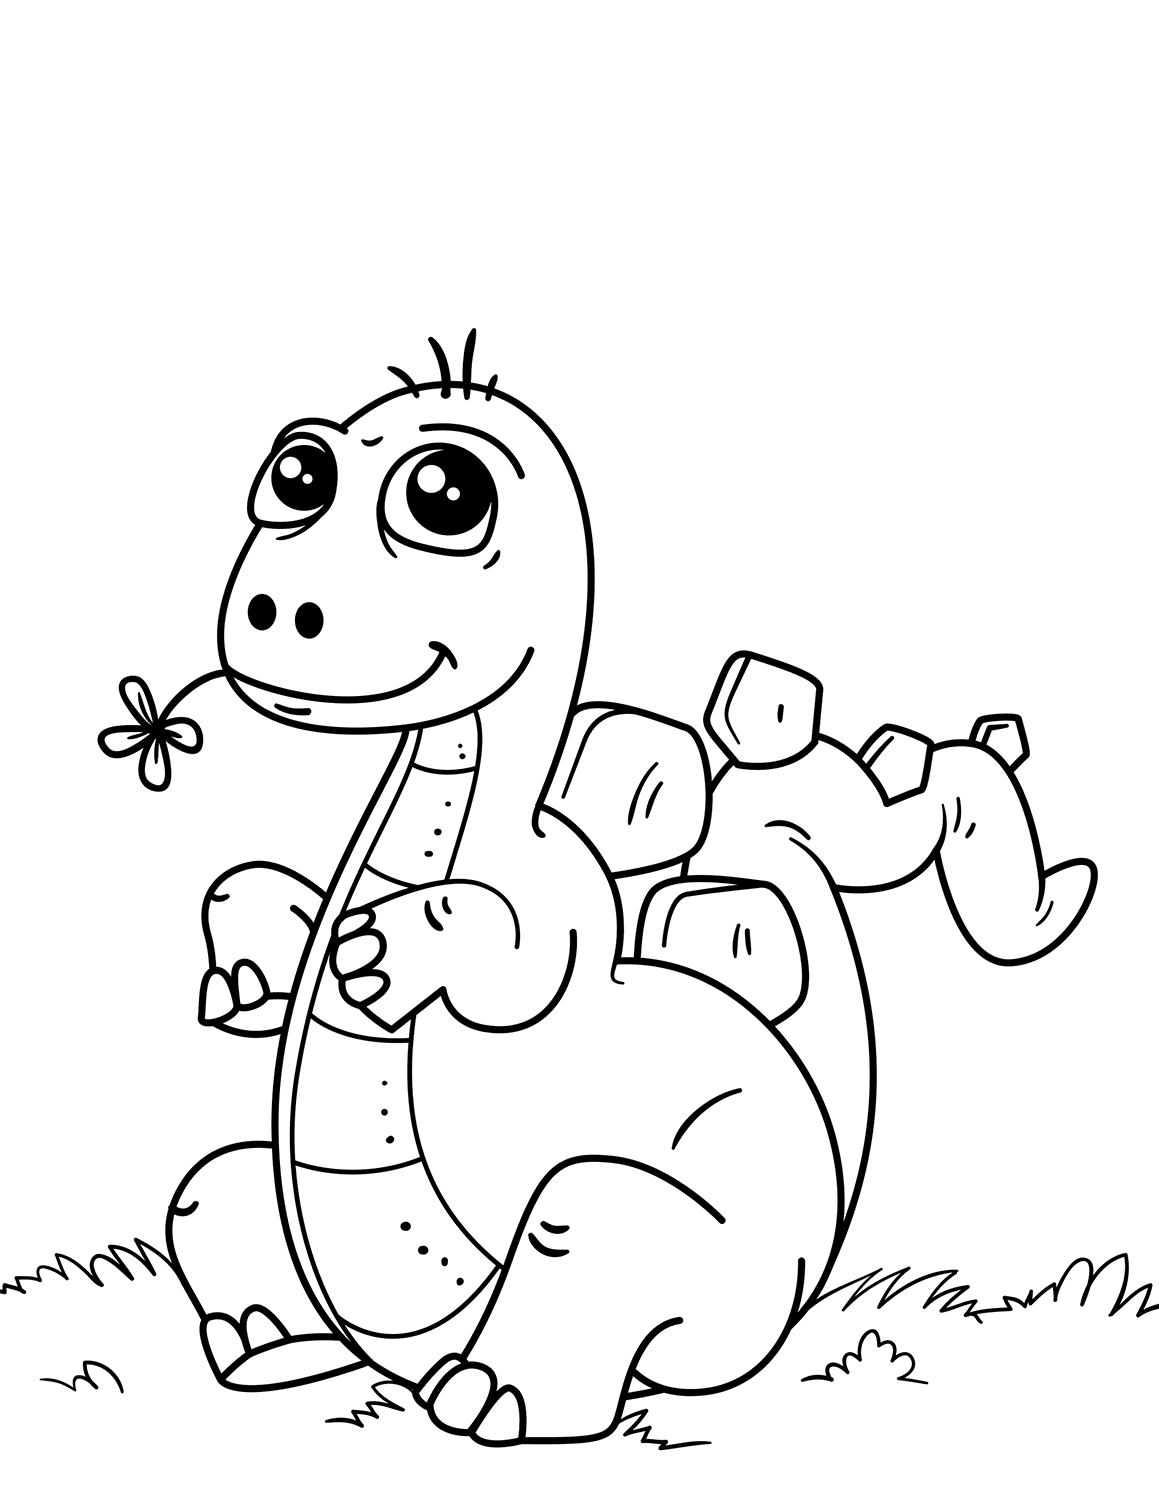 Cute Dinosaur Coloring Page - Free Printable Coloring Pages for Kids